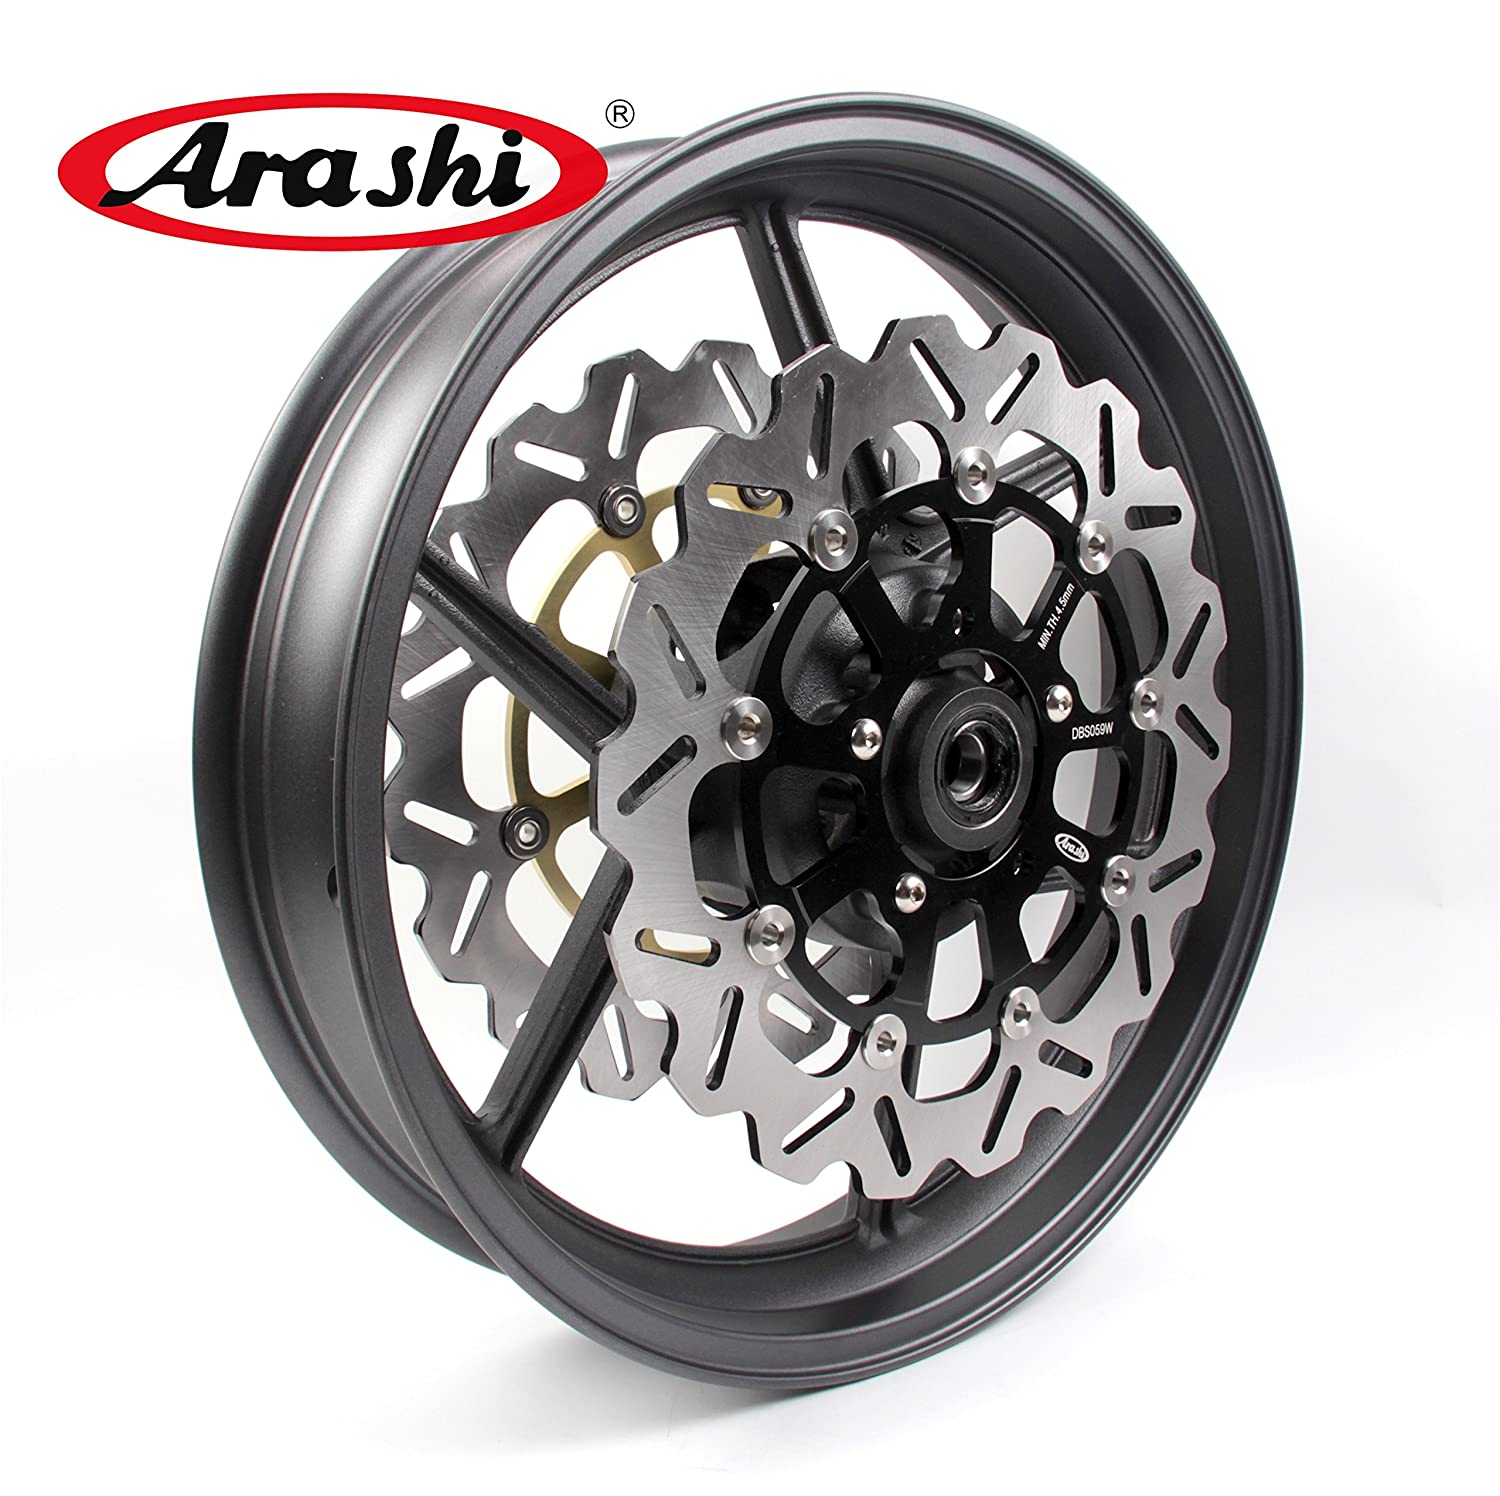 Amazon.com: Arashi Front Wheel Rim Brake Rotors for Z800 ...